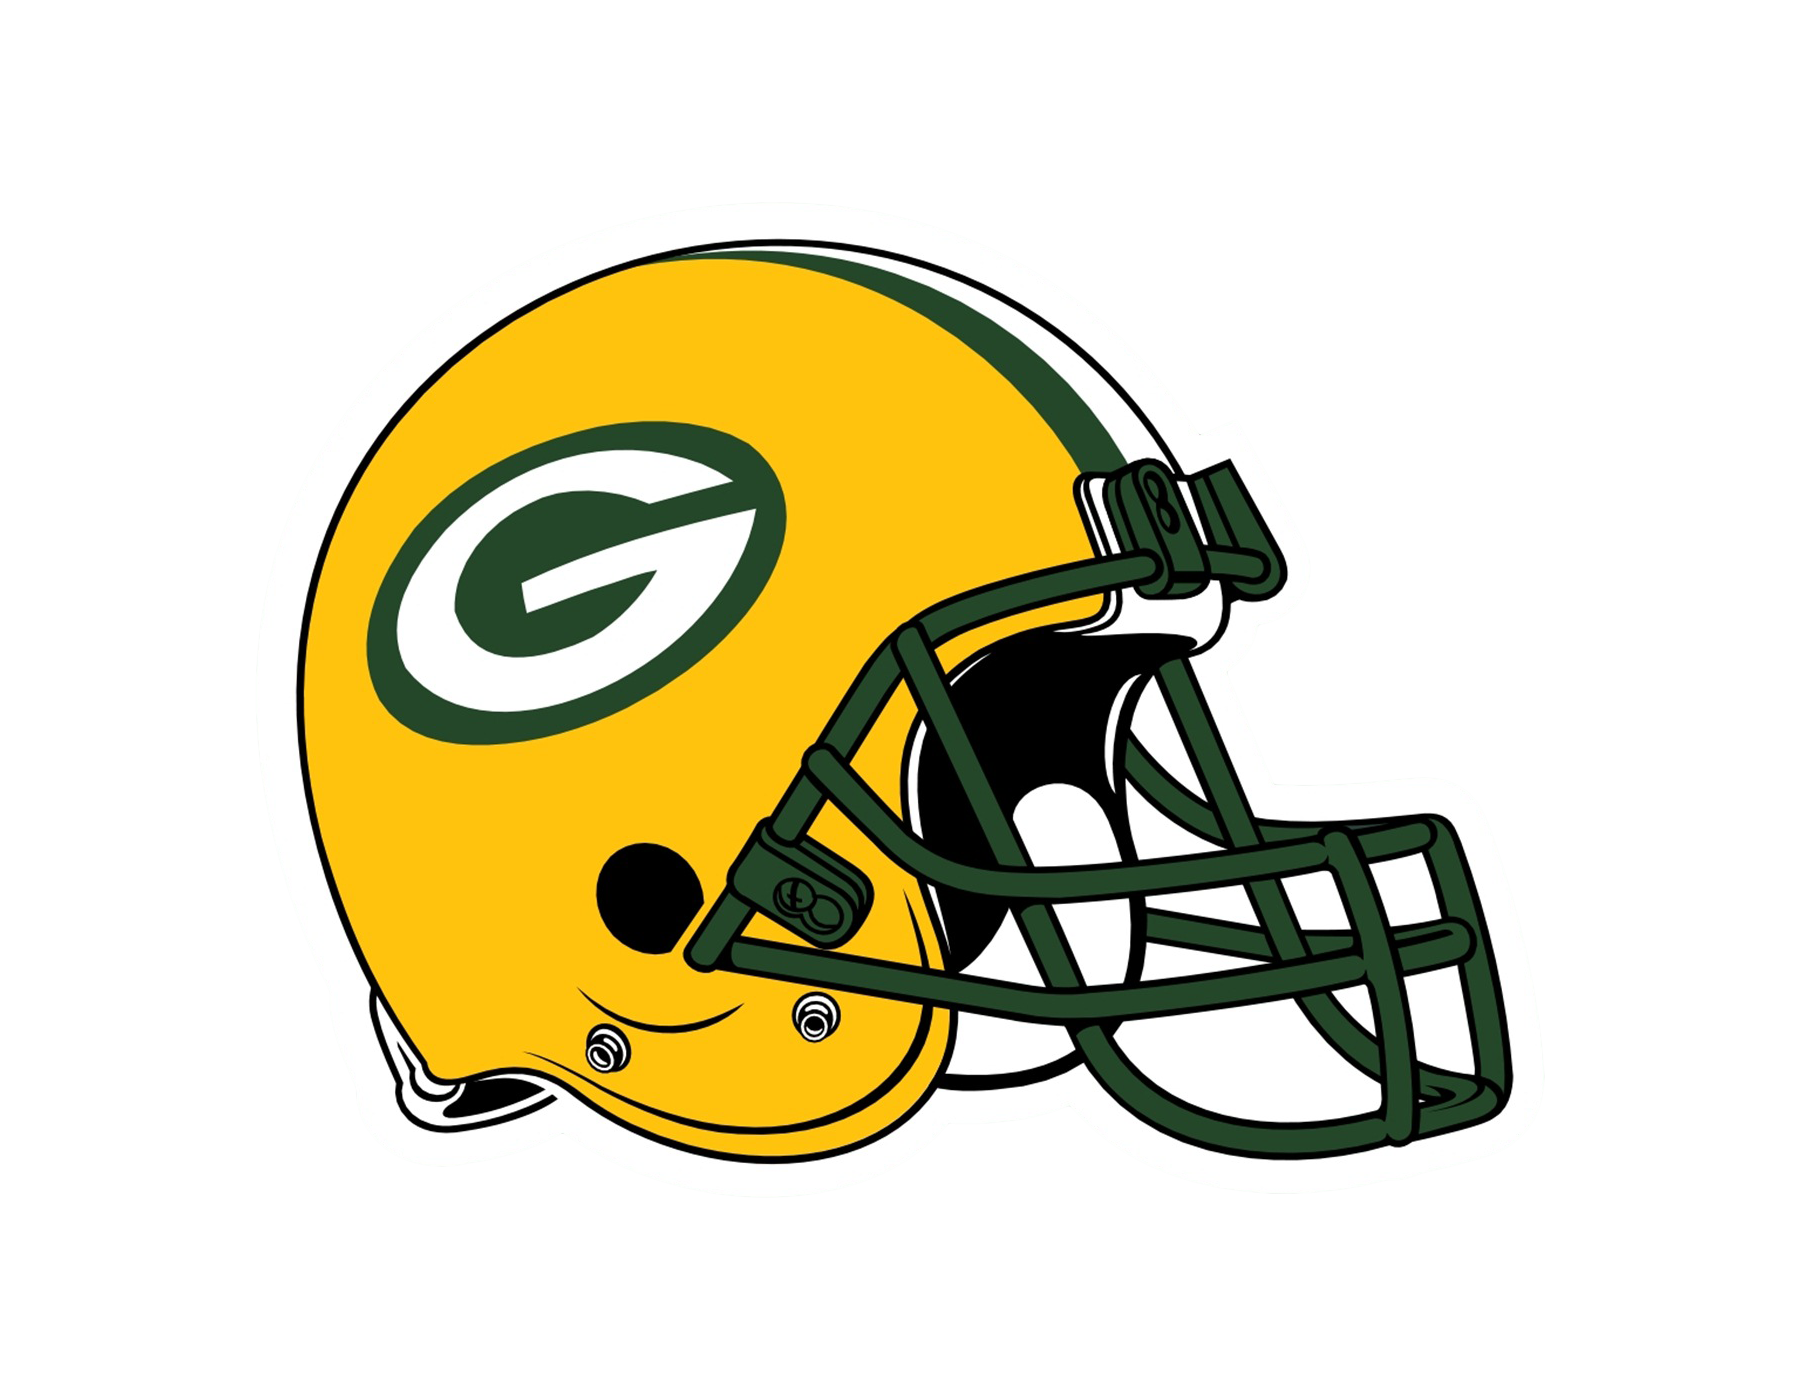 Green Bay Packers Logo Png Transparent Svg Vector Freebie Supply In 2020 Green Bay Packers Helmet Green Bay Packers Logo Nfl Green Bay